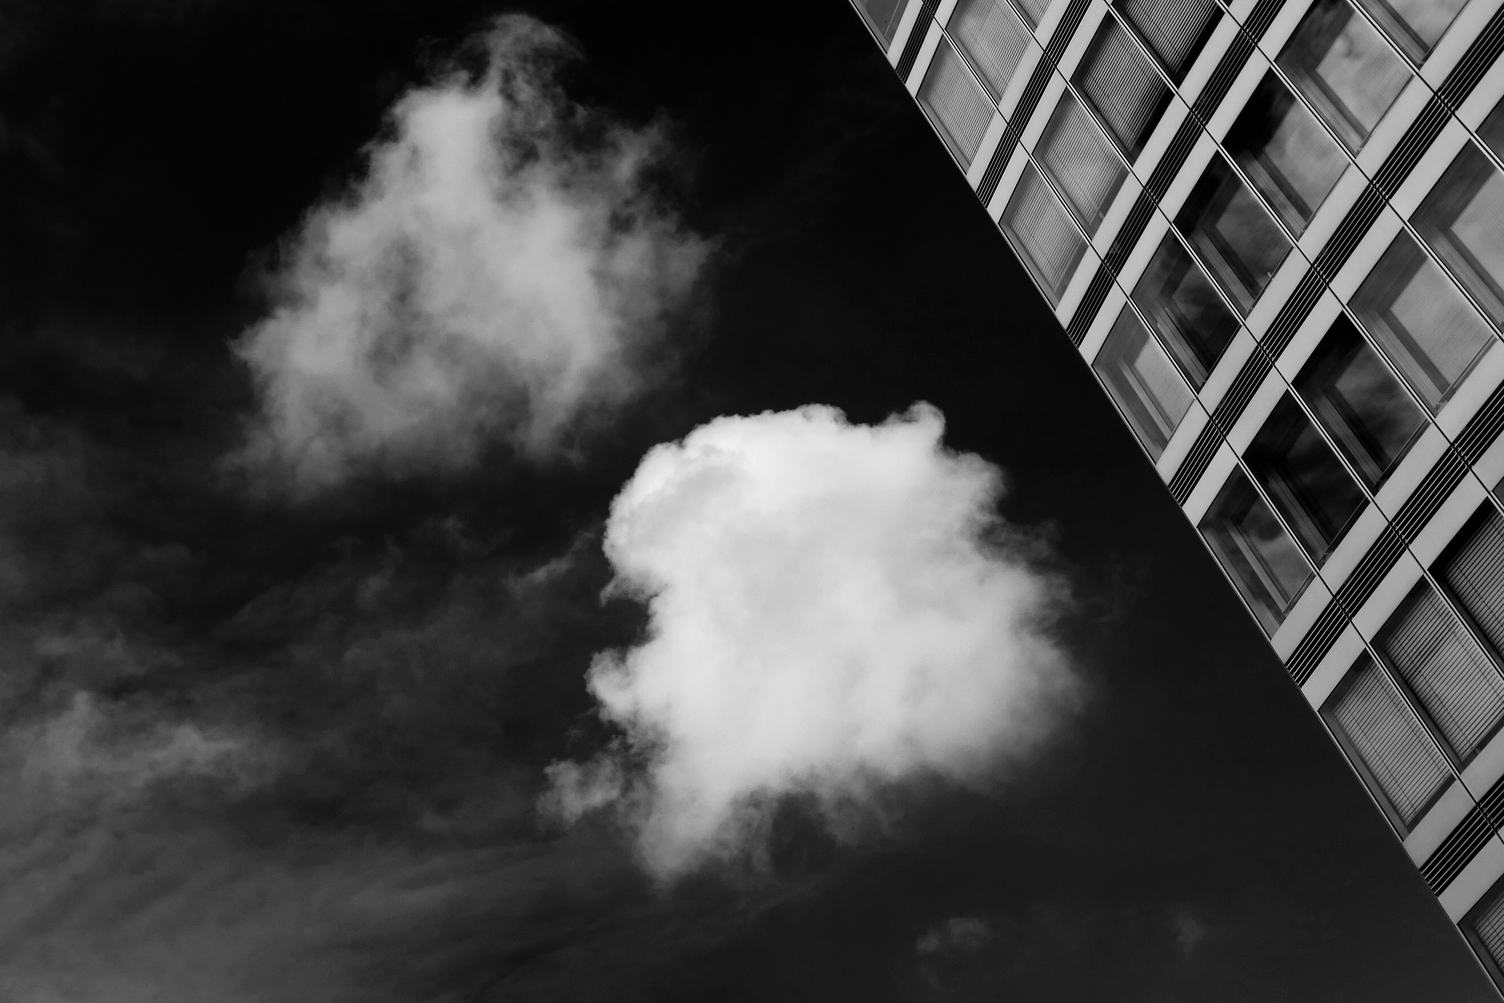 Black and White Abstract Building and Sky